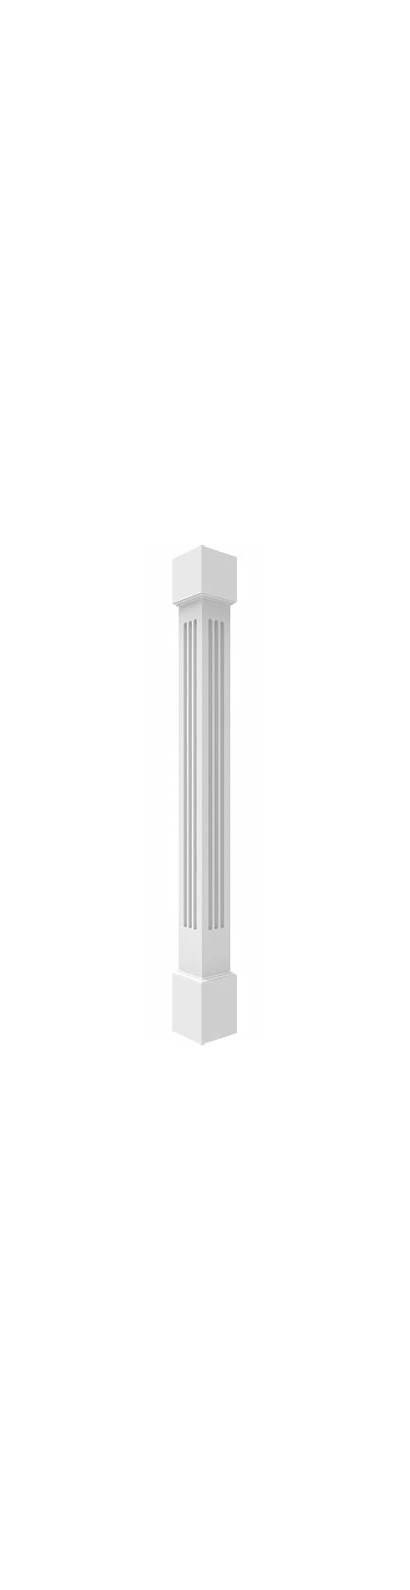 Pvc Square Columns Fluted Tapered Column Non